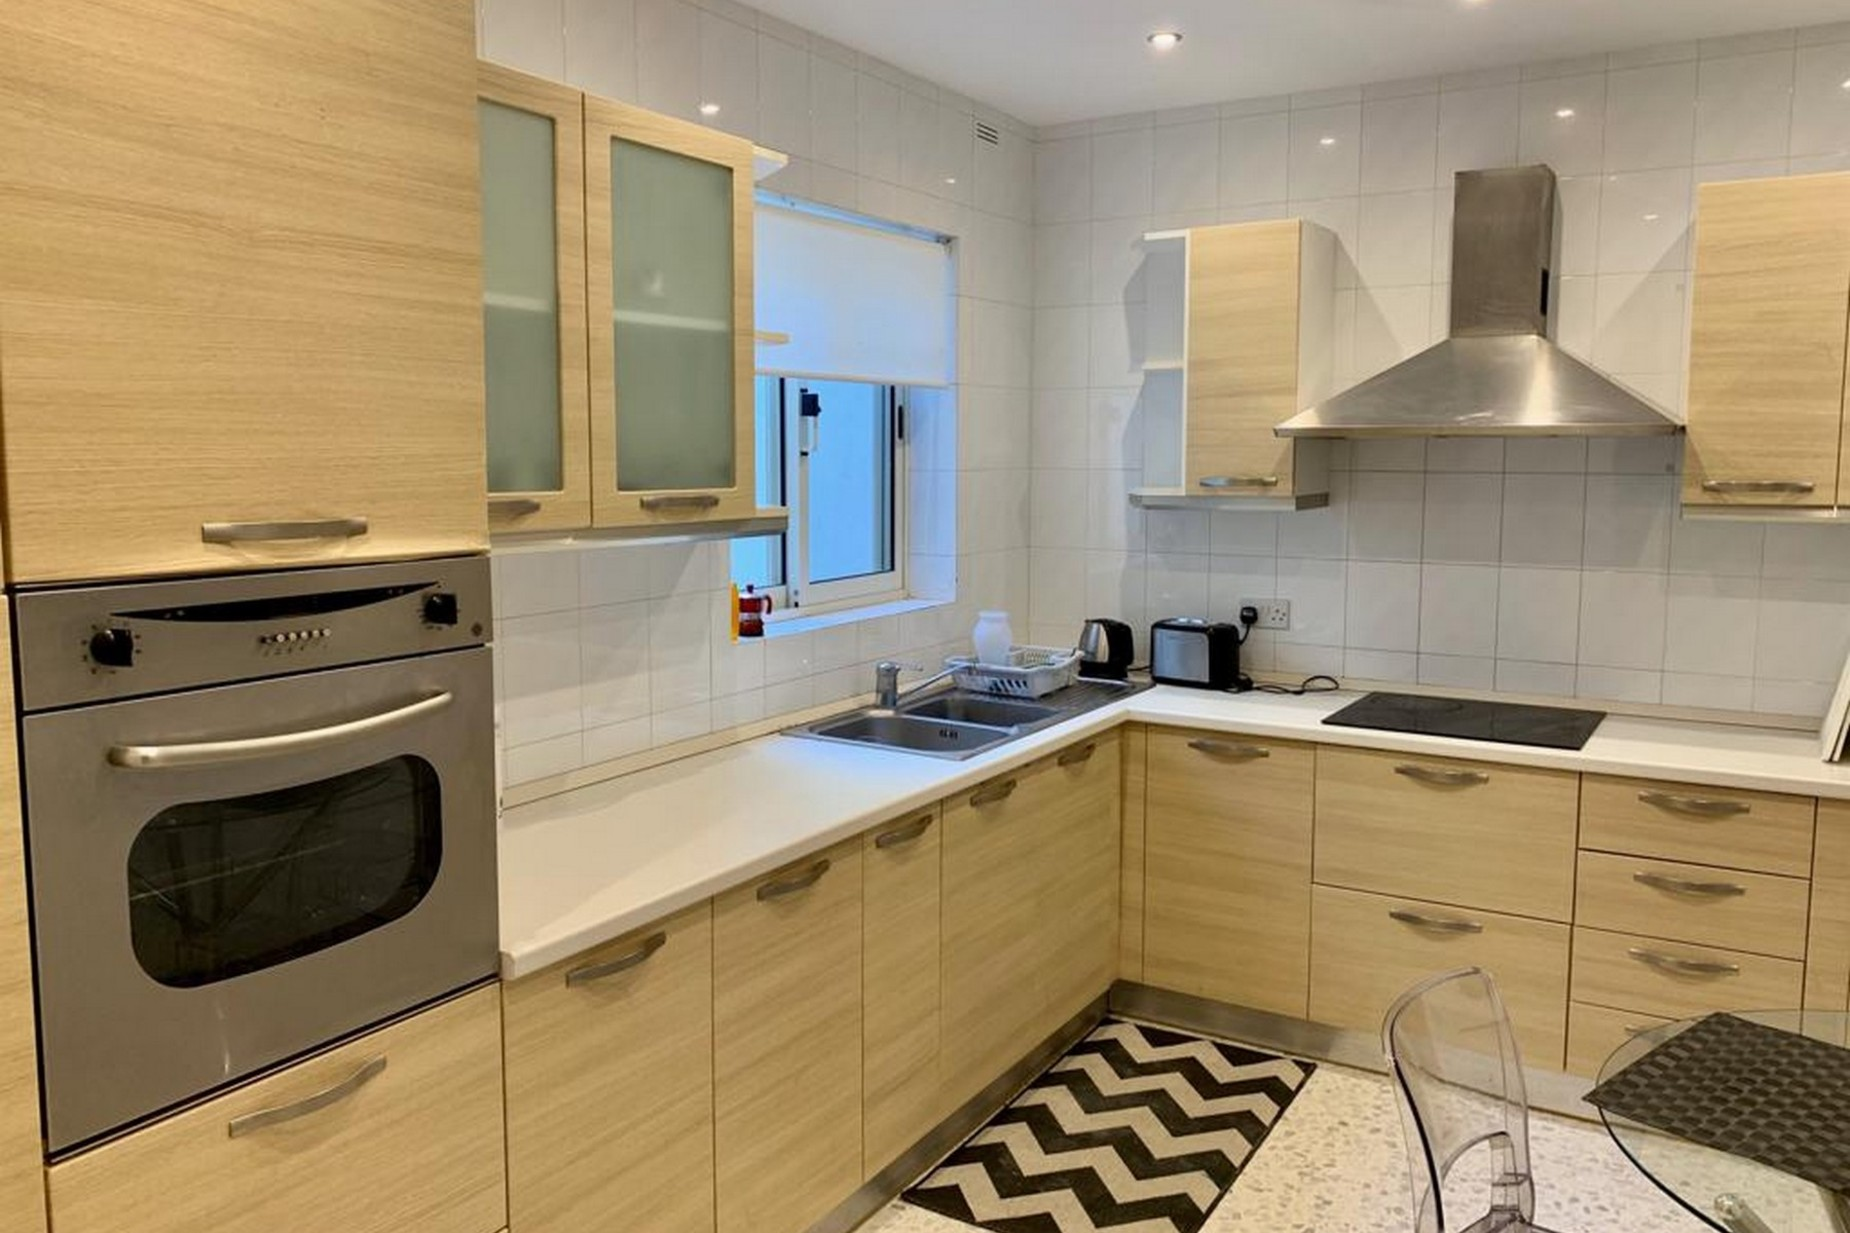 2 bed Maisonette For Rent in Madliena, Madliena - thumb 7